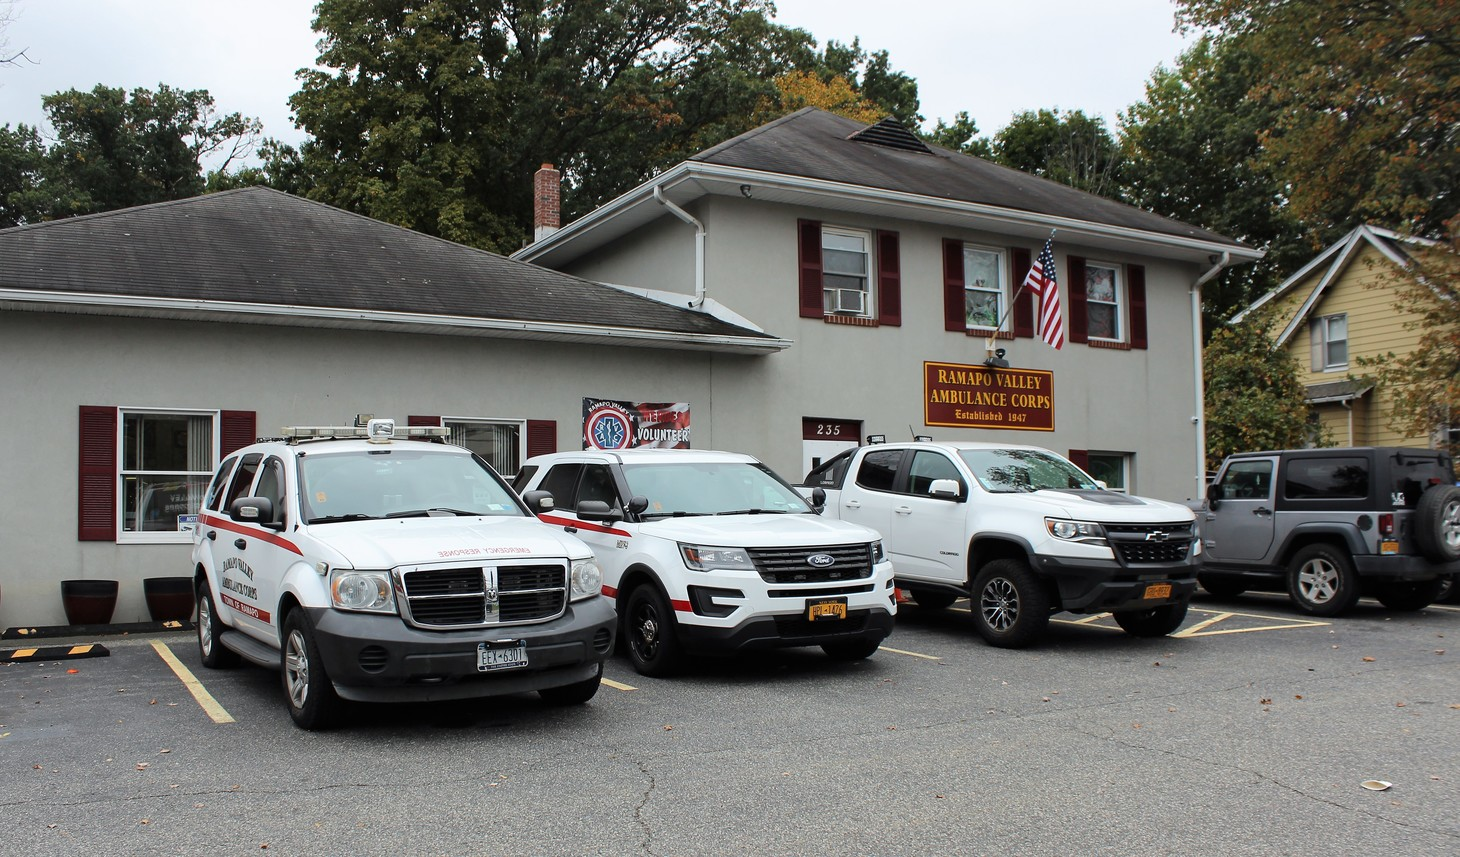 Ramapo Valley Ambulance Corps Warned to Keep Silent on Overdue Funds